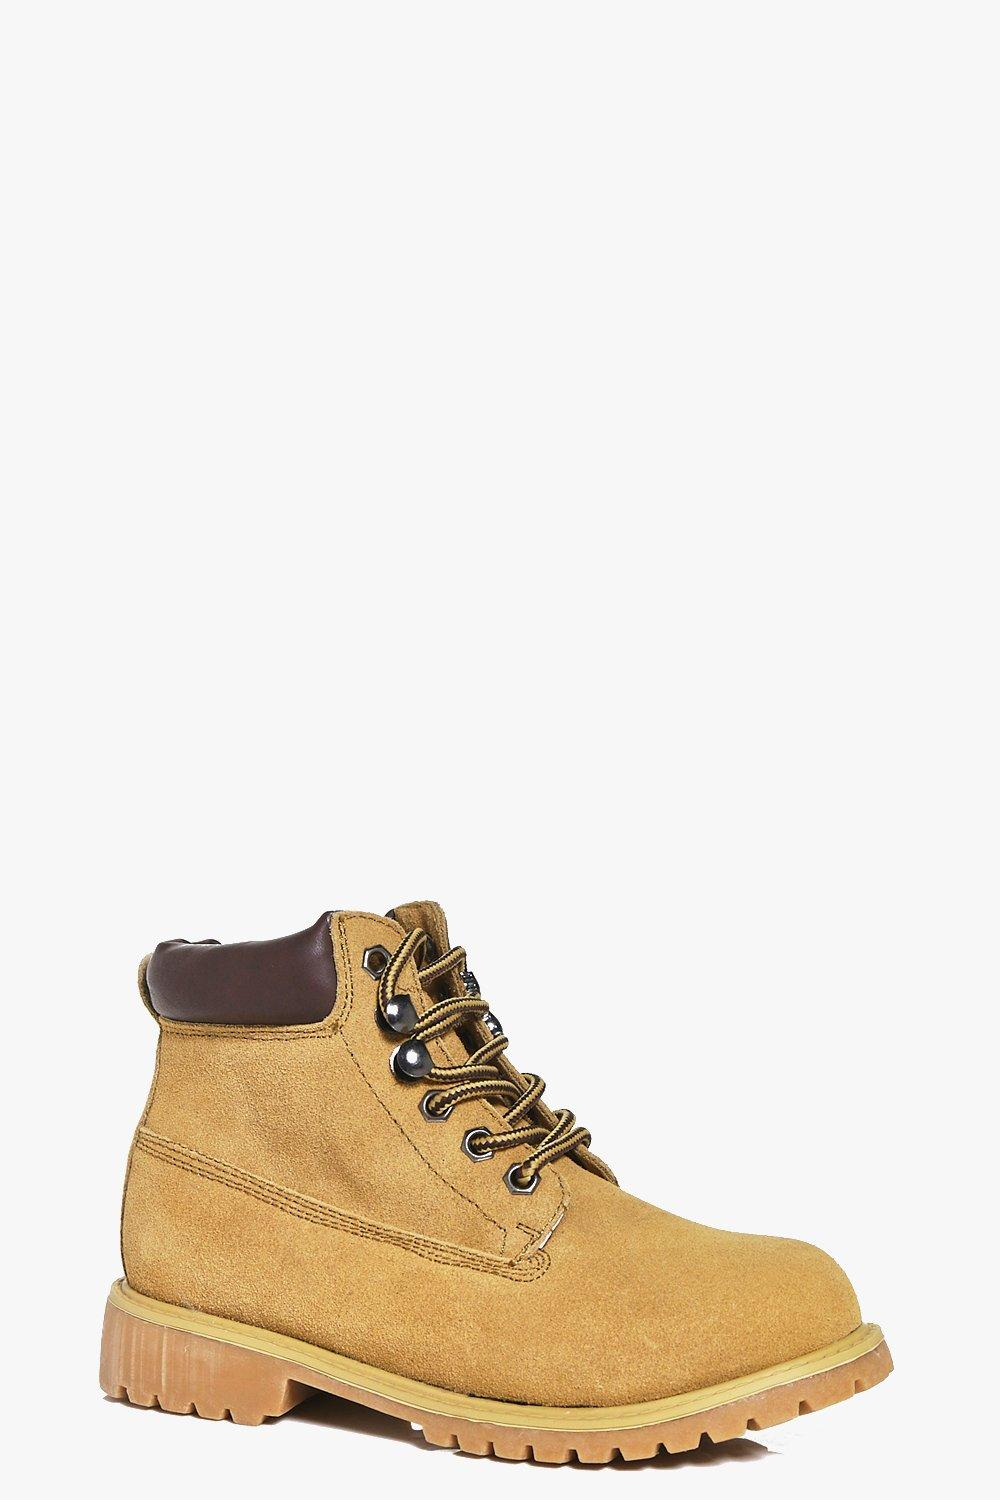 Boys Lace Up Hiker Boots